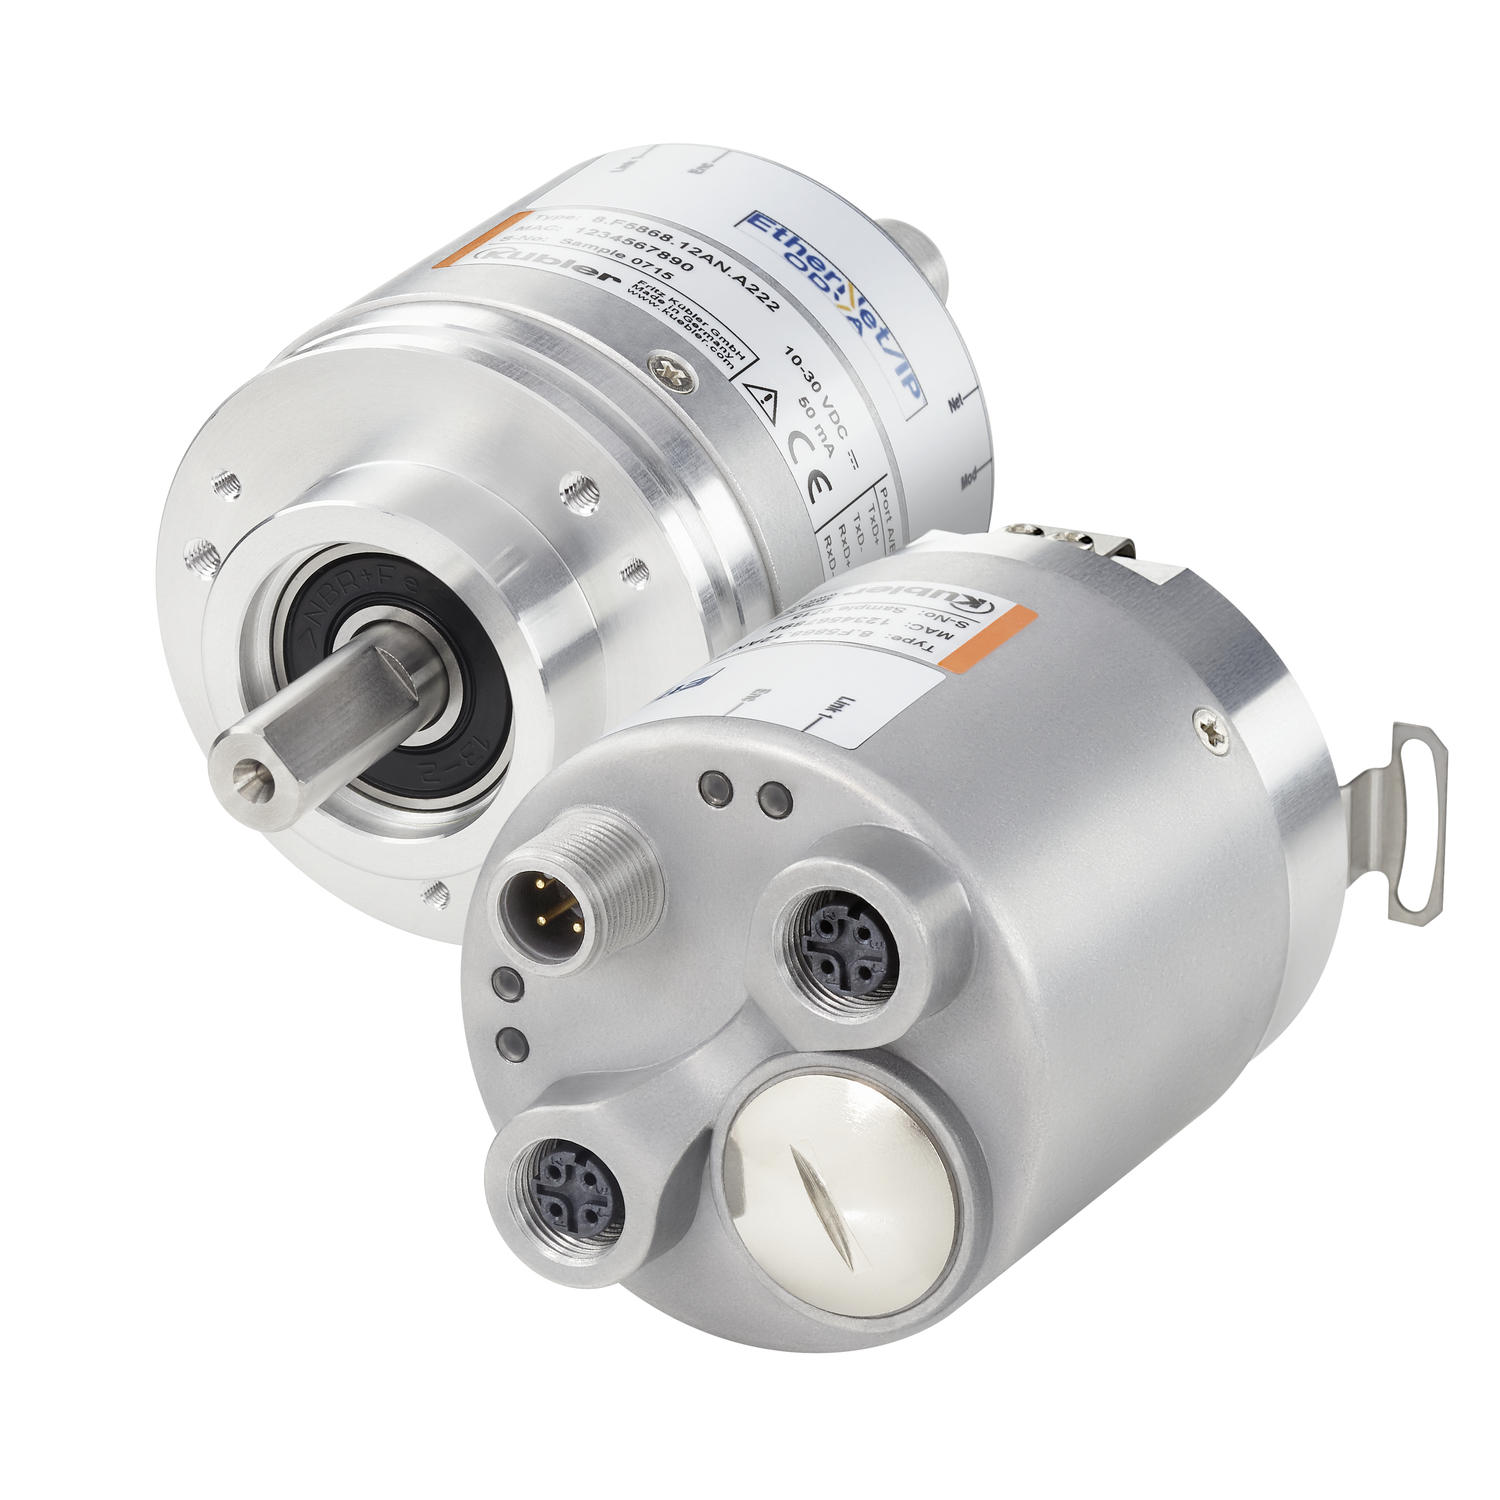 Absolutkodad vinkelgivare Sendix F5858/F5878, optisk, EtherNet/IP, Ø58 mm